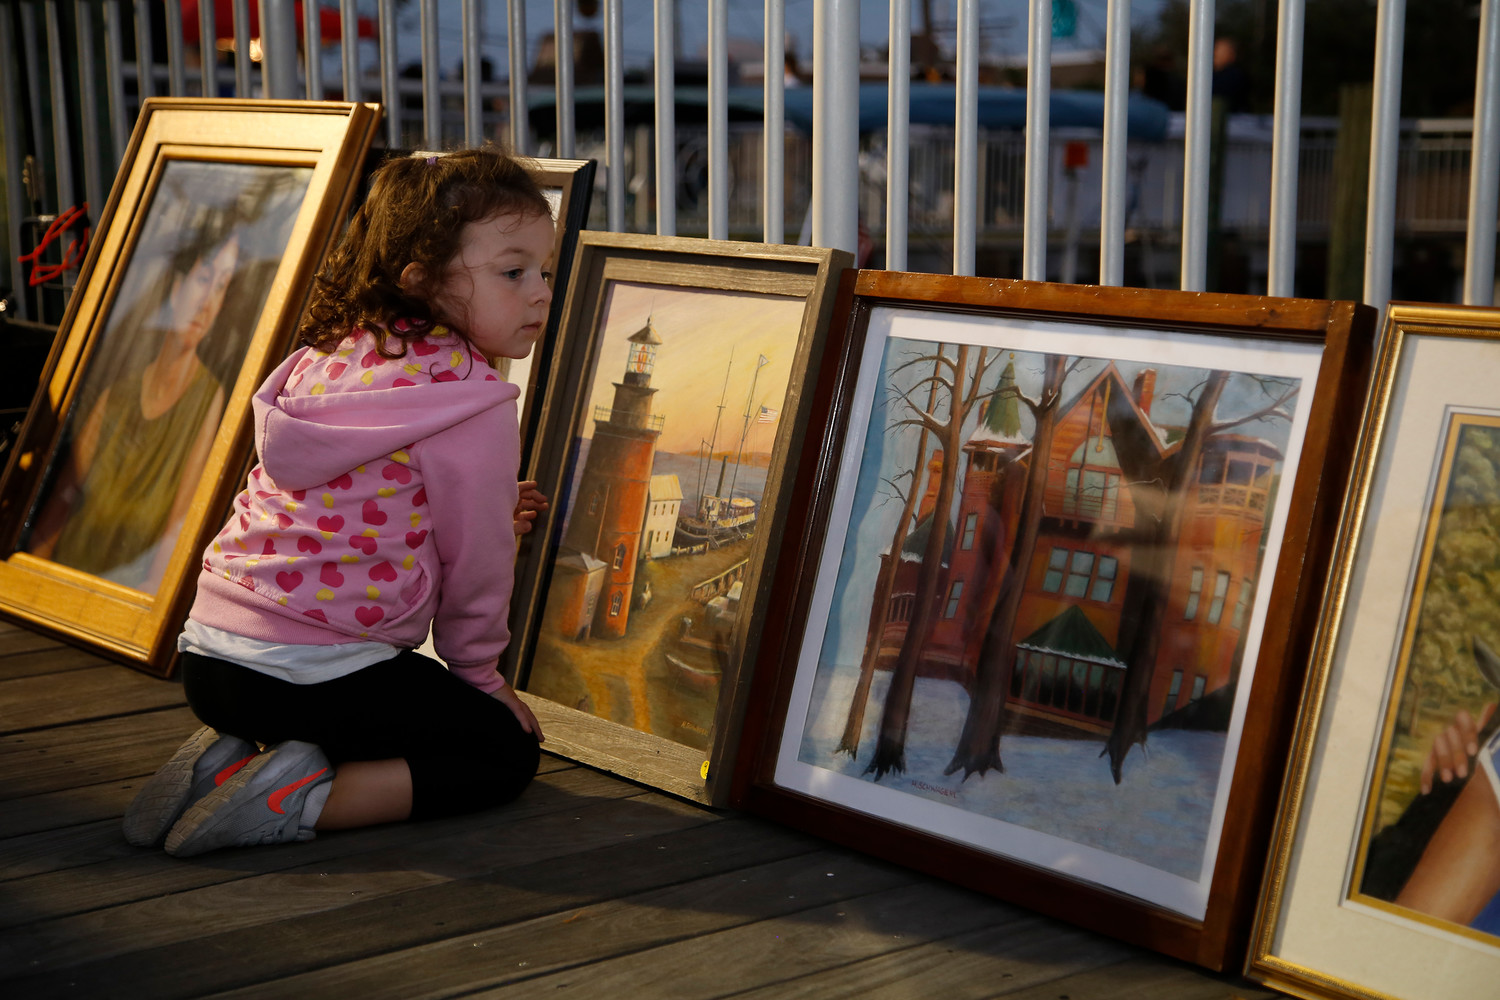 Georgia Vece, 5, showed her eye for art at the waterfront art walk in East Rockaway on Oct. 4.